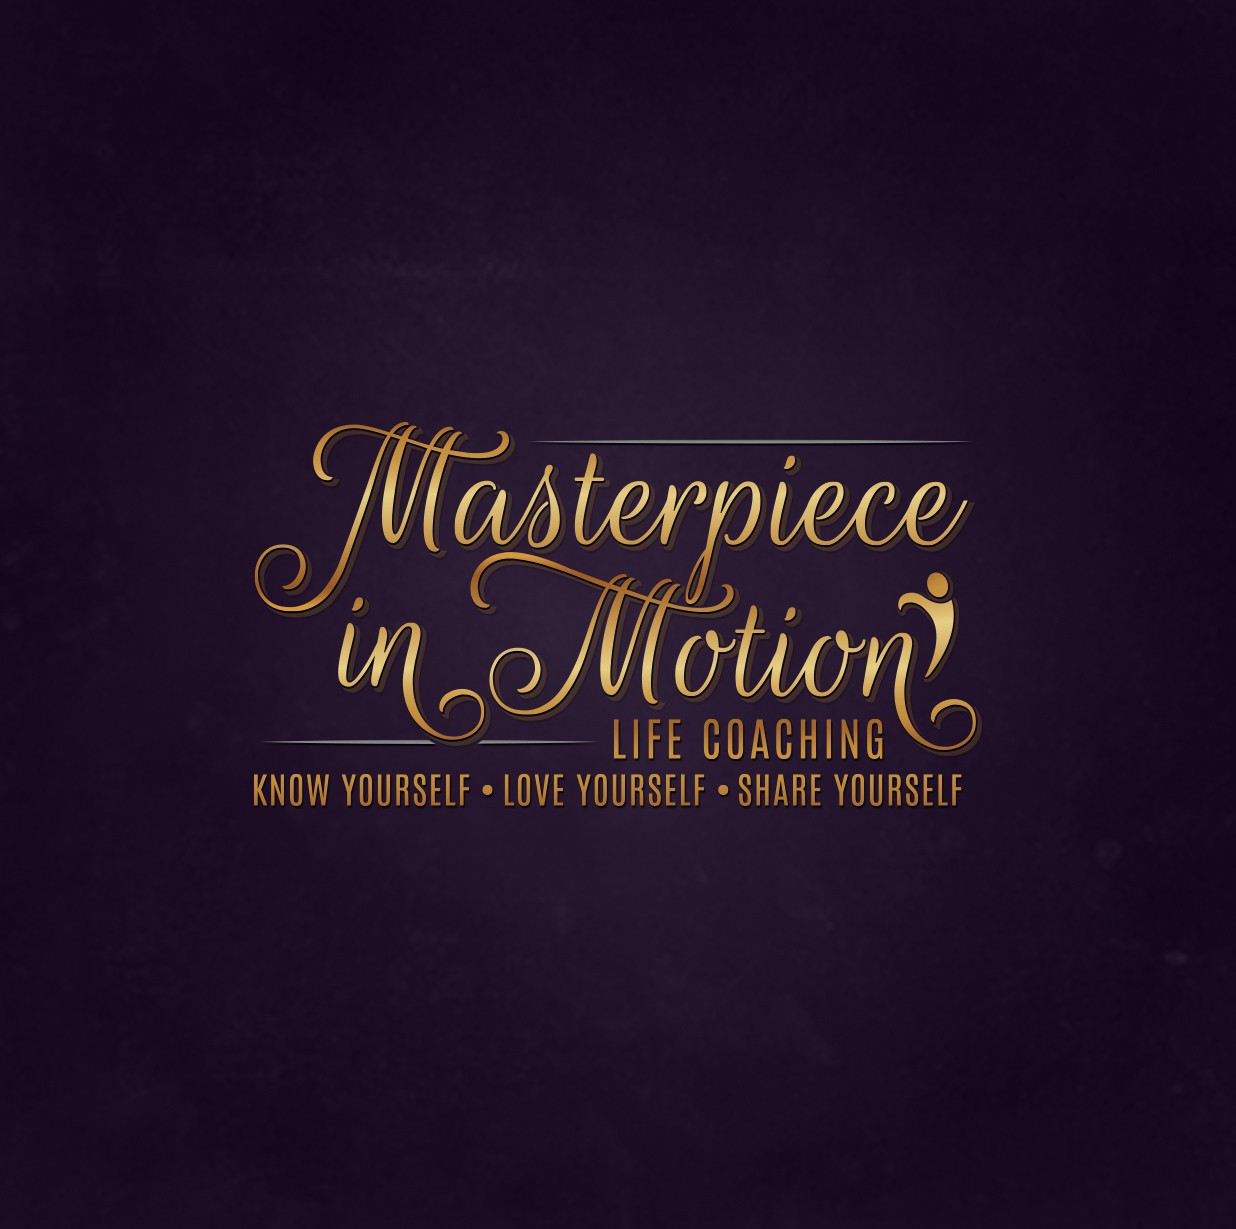 vintage classic simple logo for Masterpiece in Motion Life Coaching